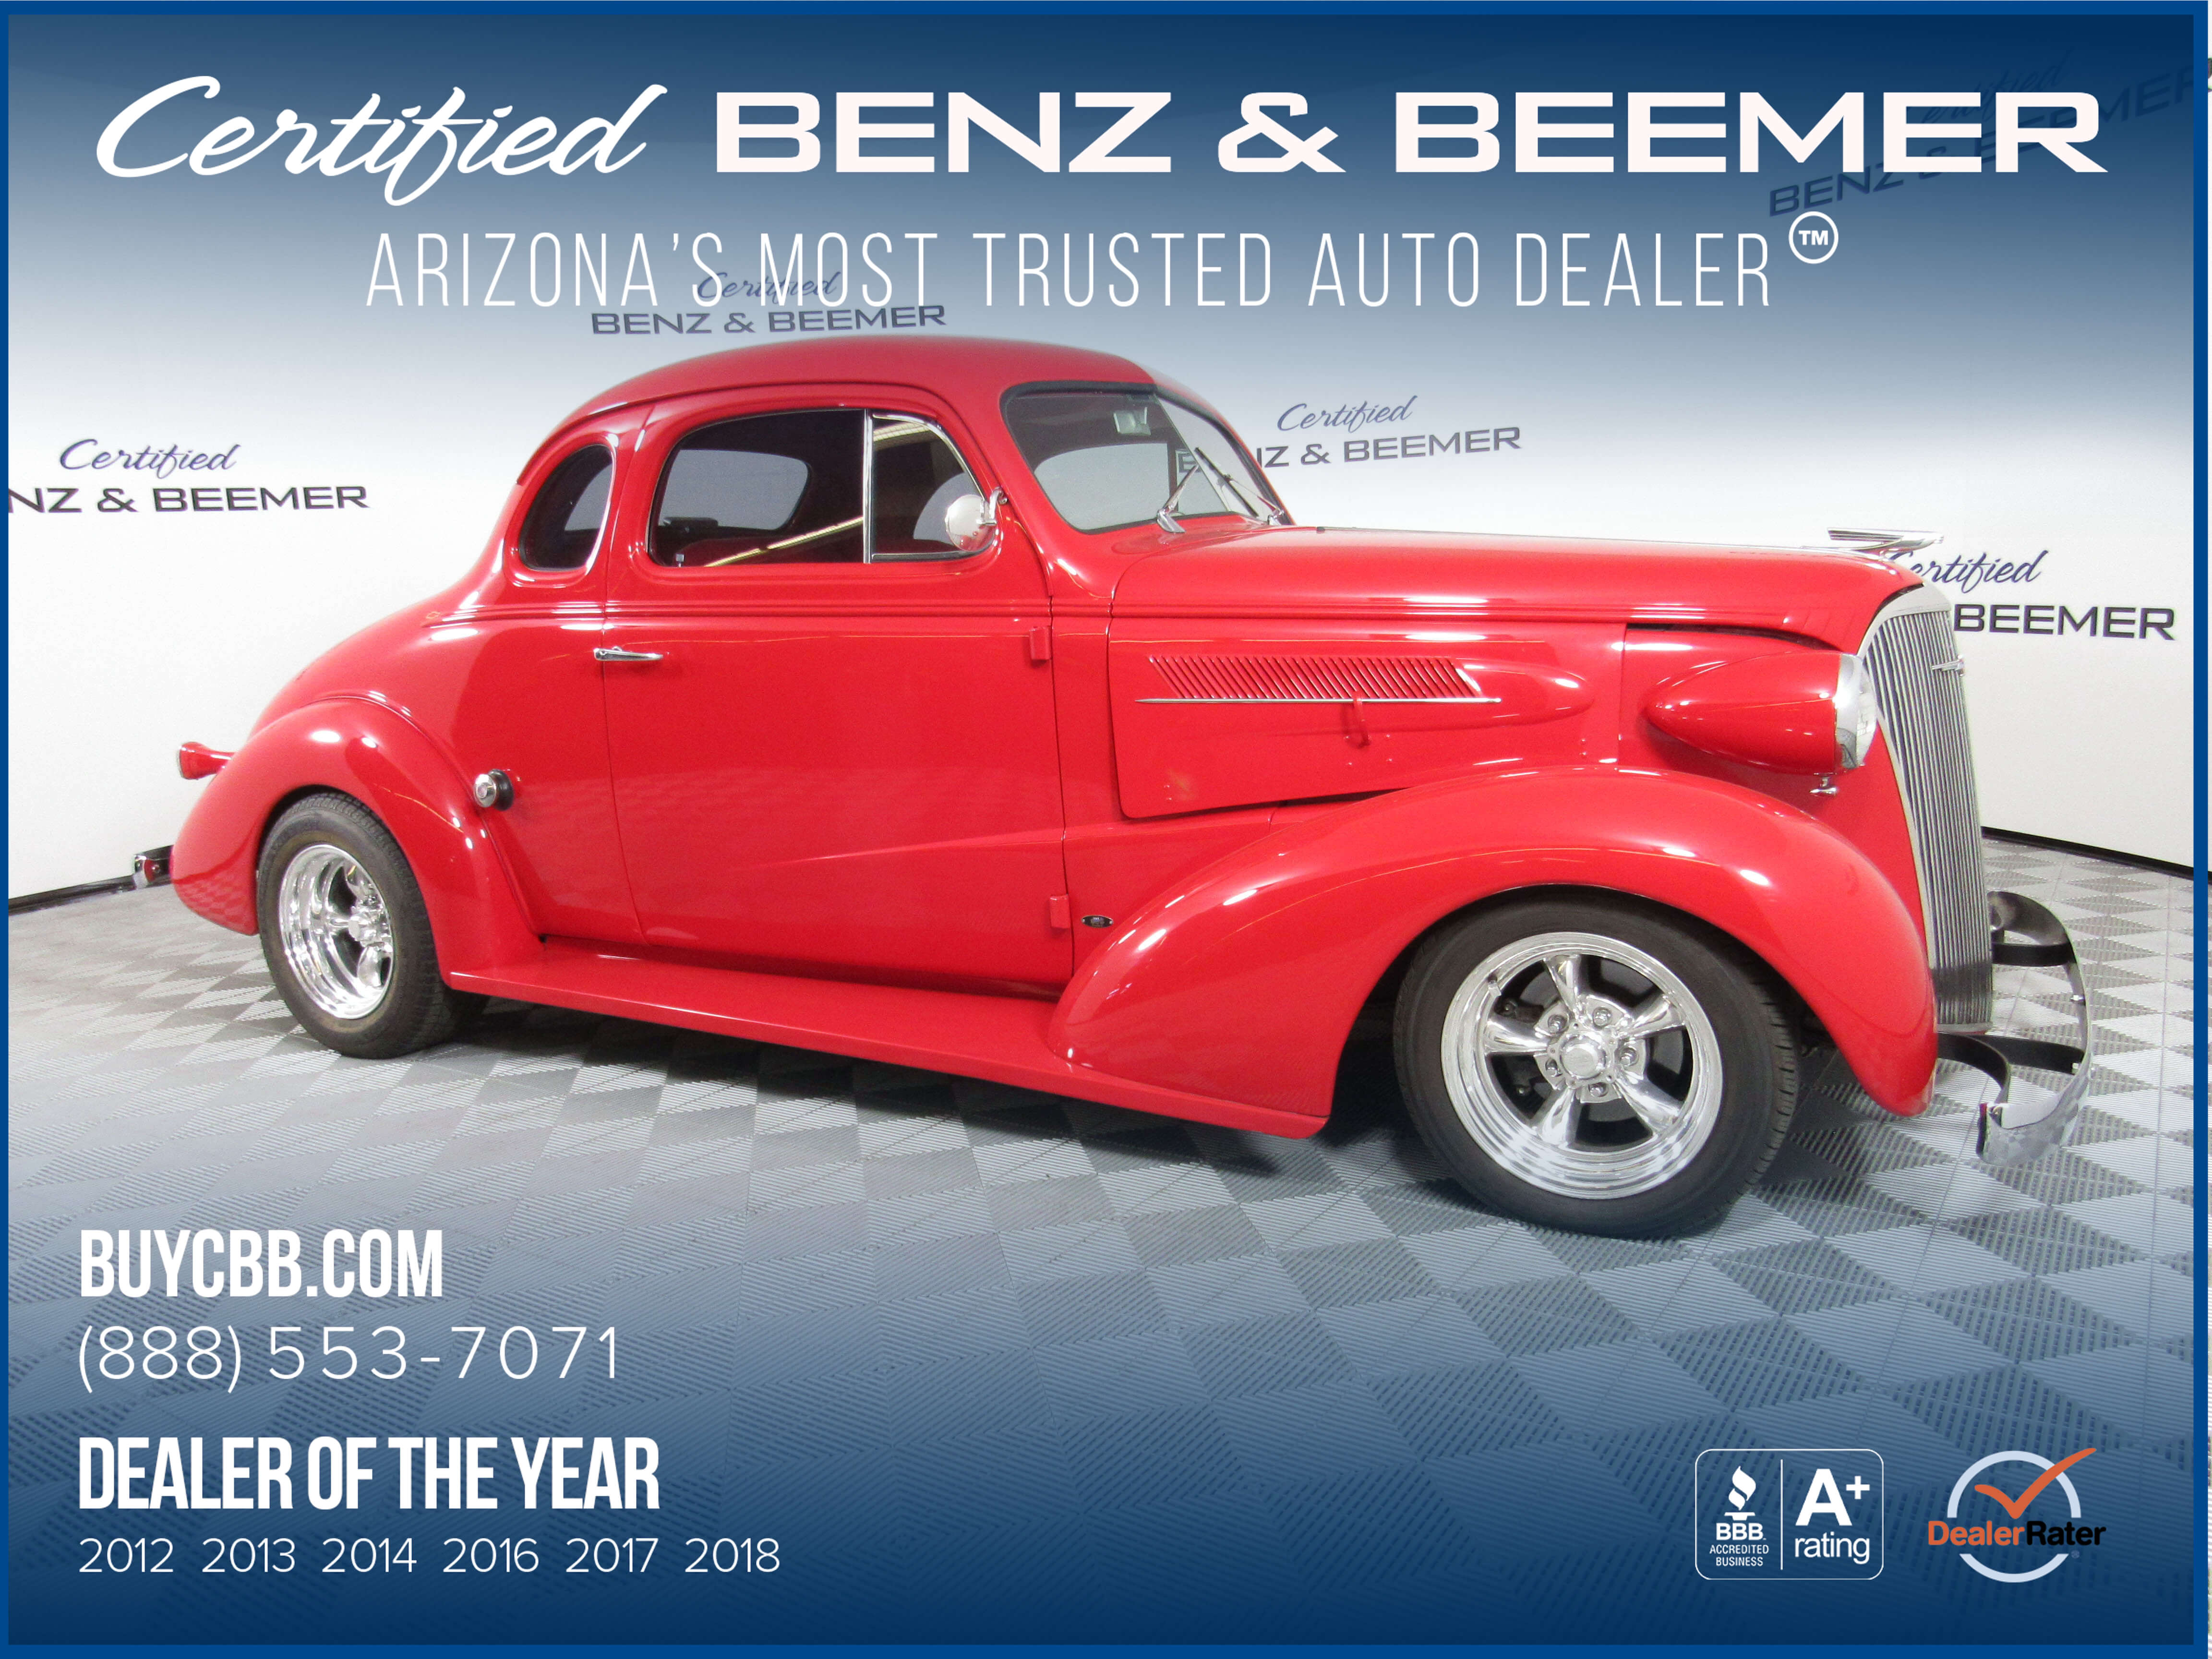 Certified Benz & Beemer - Used 1938 Chevrolet Coupe